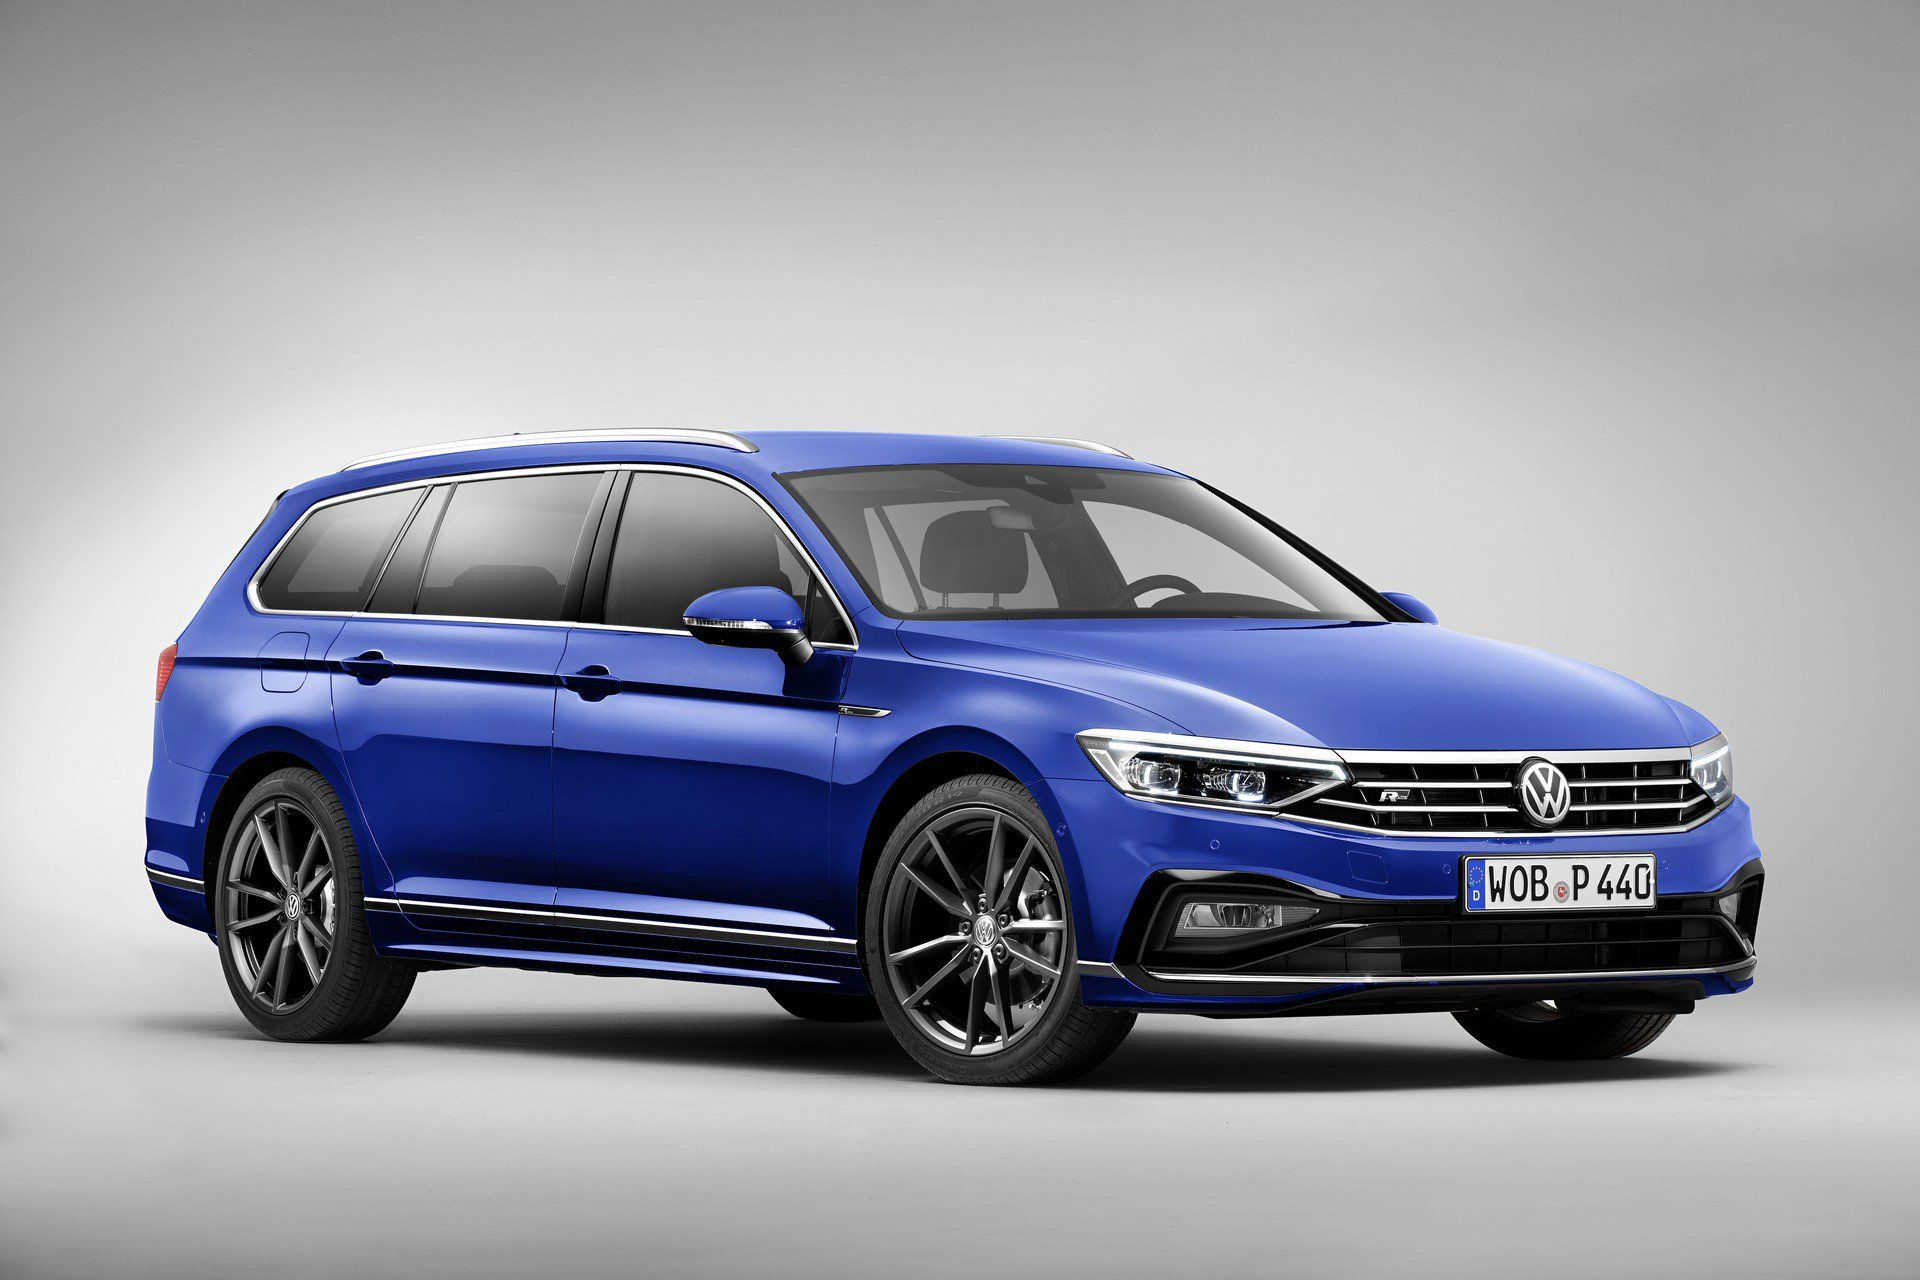 Europe S 2020 Vw Passat Facelift Debuts With Updated Styling And Autonomous Tech Carscoops Vw Passat Volkswagen Passat Volkswagen